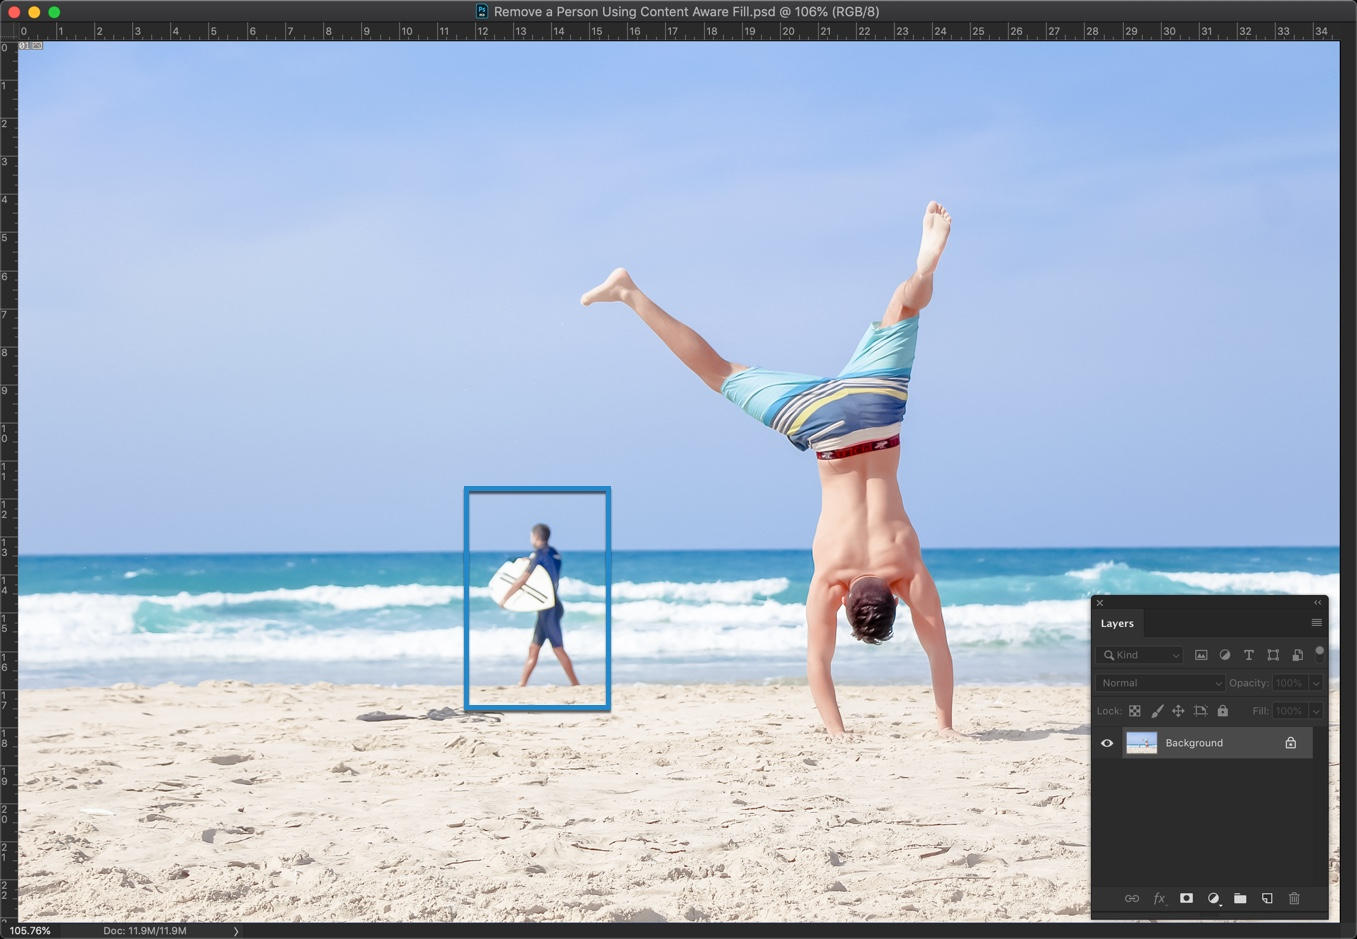 1-2 - [Pro Hack] Use Content Aware Fill to Remove a Person in Photoshop